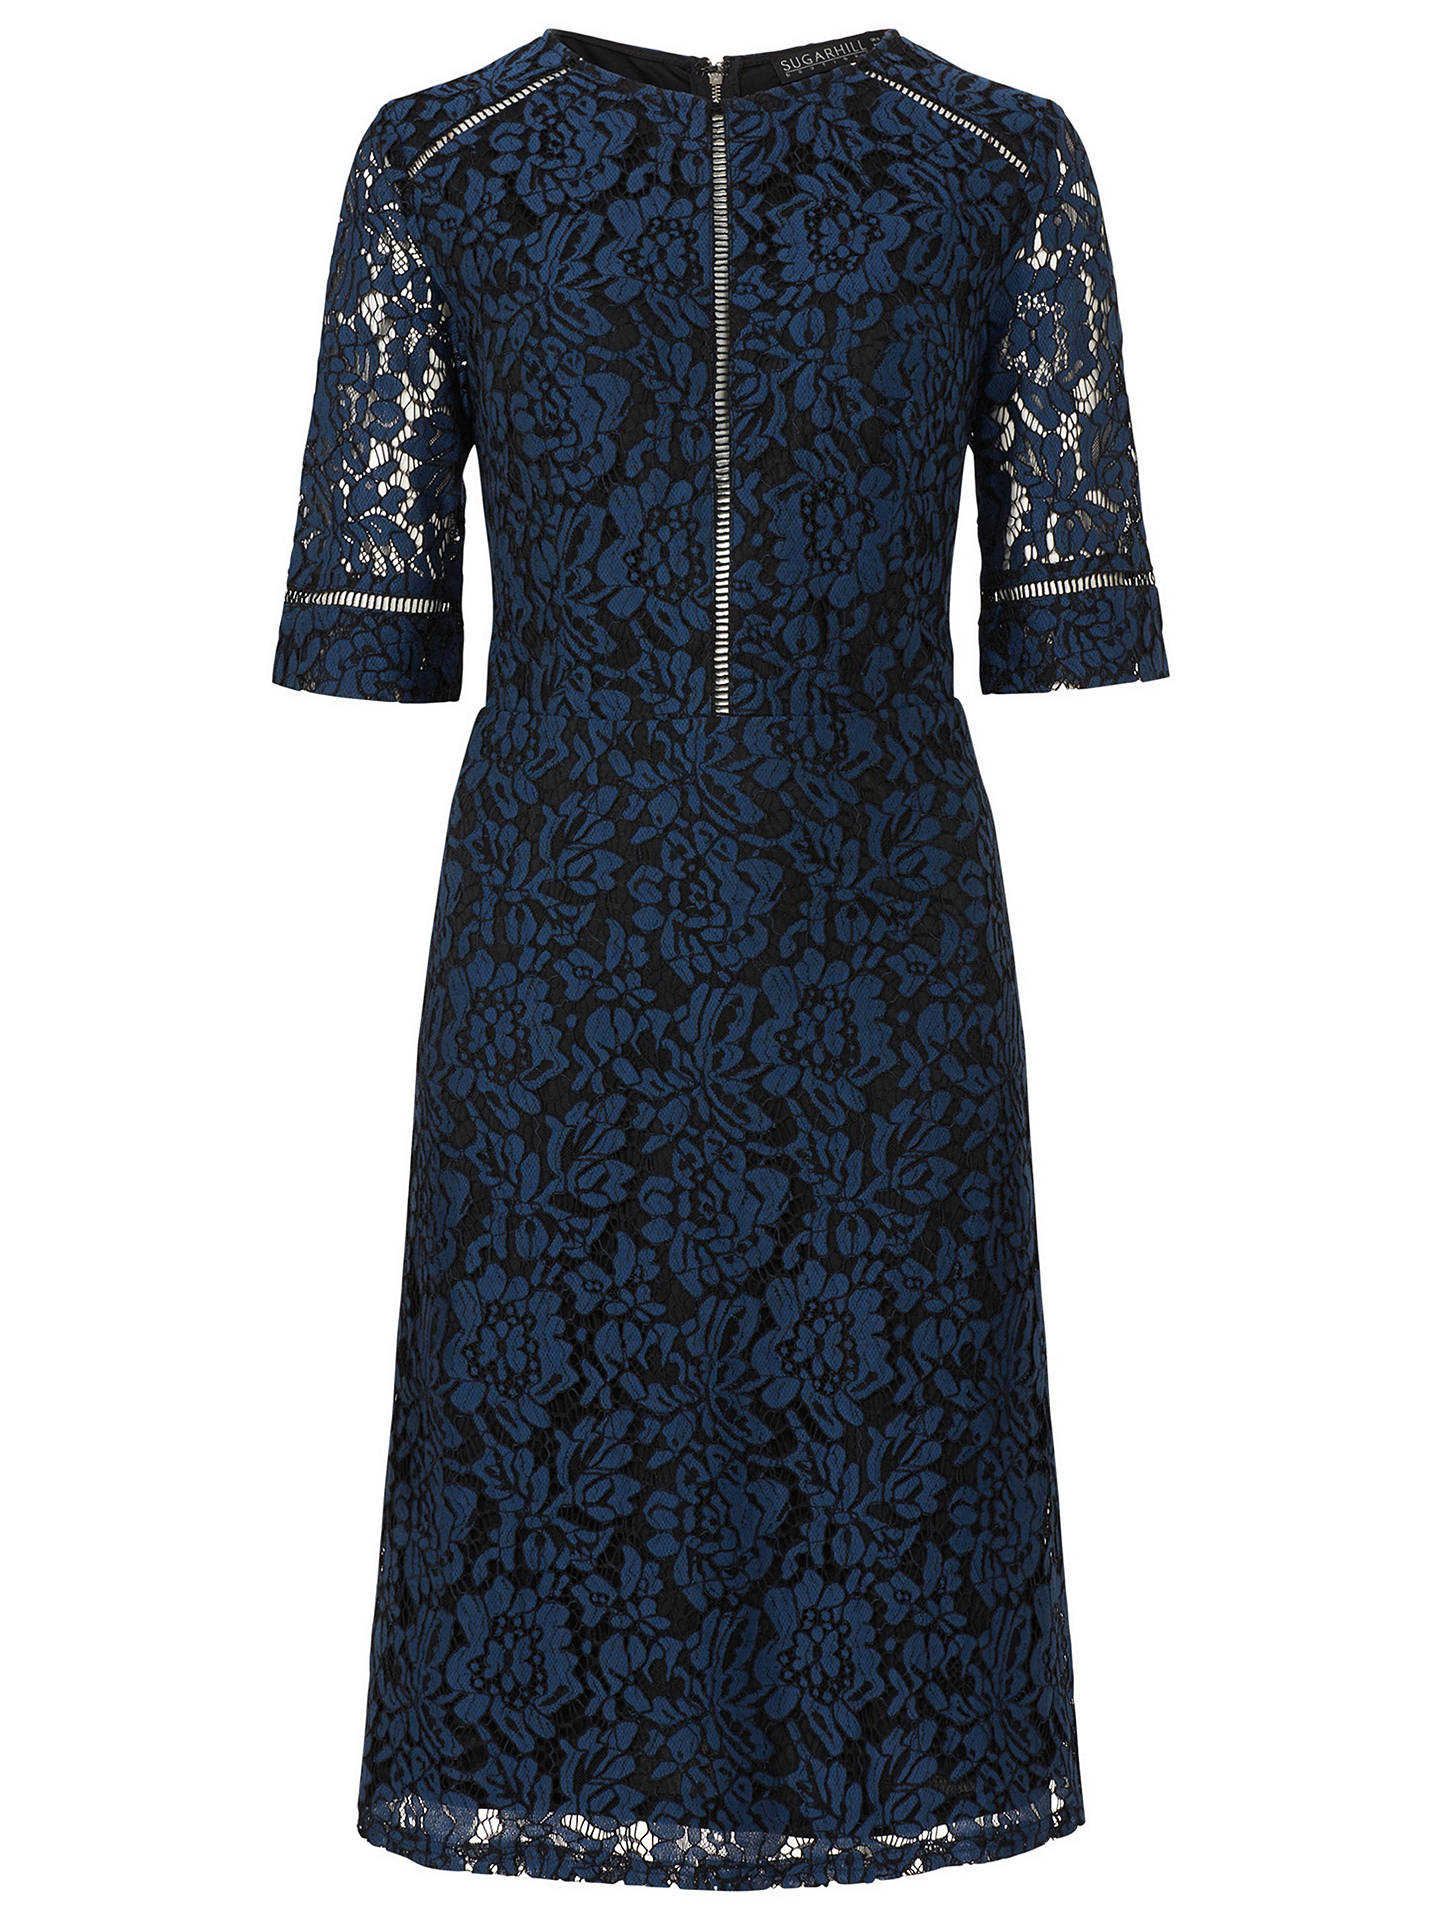 Buy Sugarhill Brighton Rosemary A-Line Lace Dress, Navy/Black, 8 Online at johnlewis.com